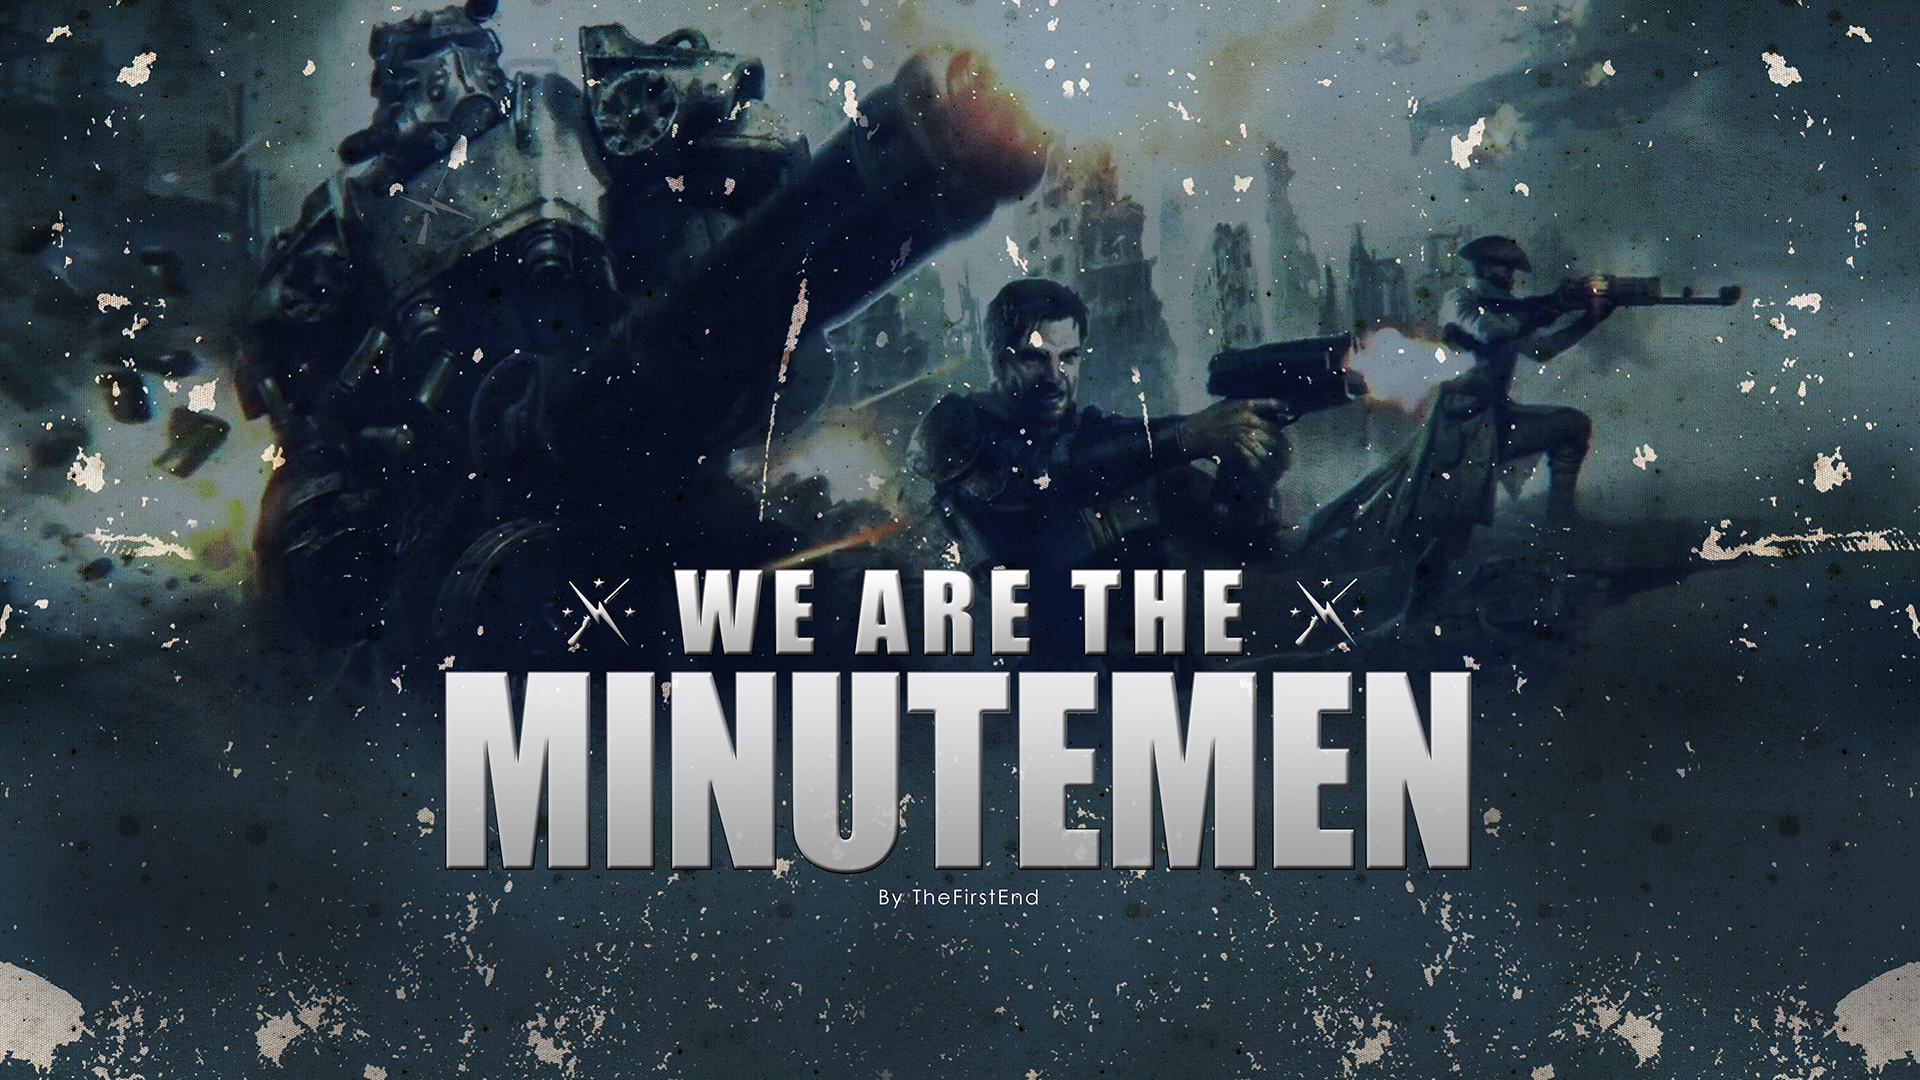 We Are The Minutemen